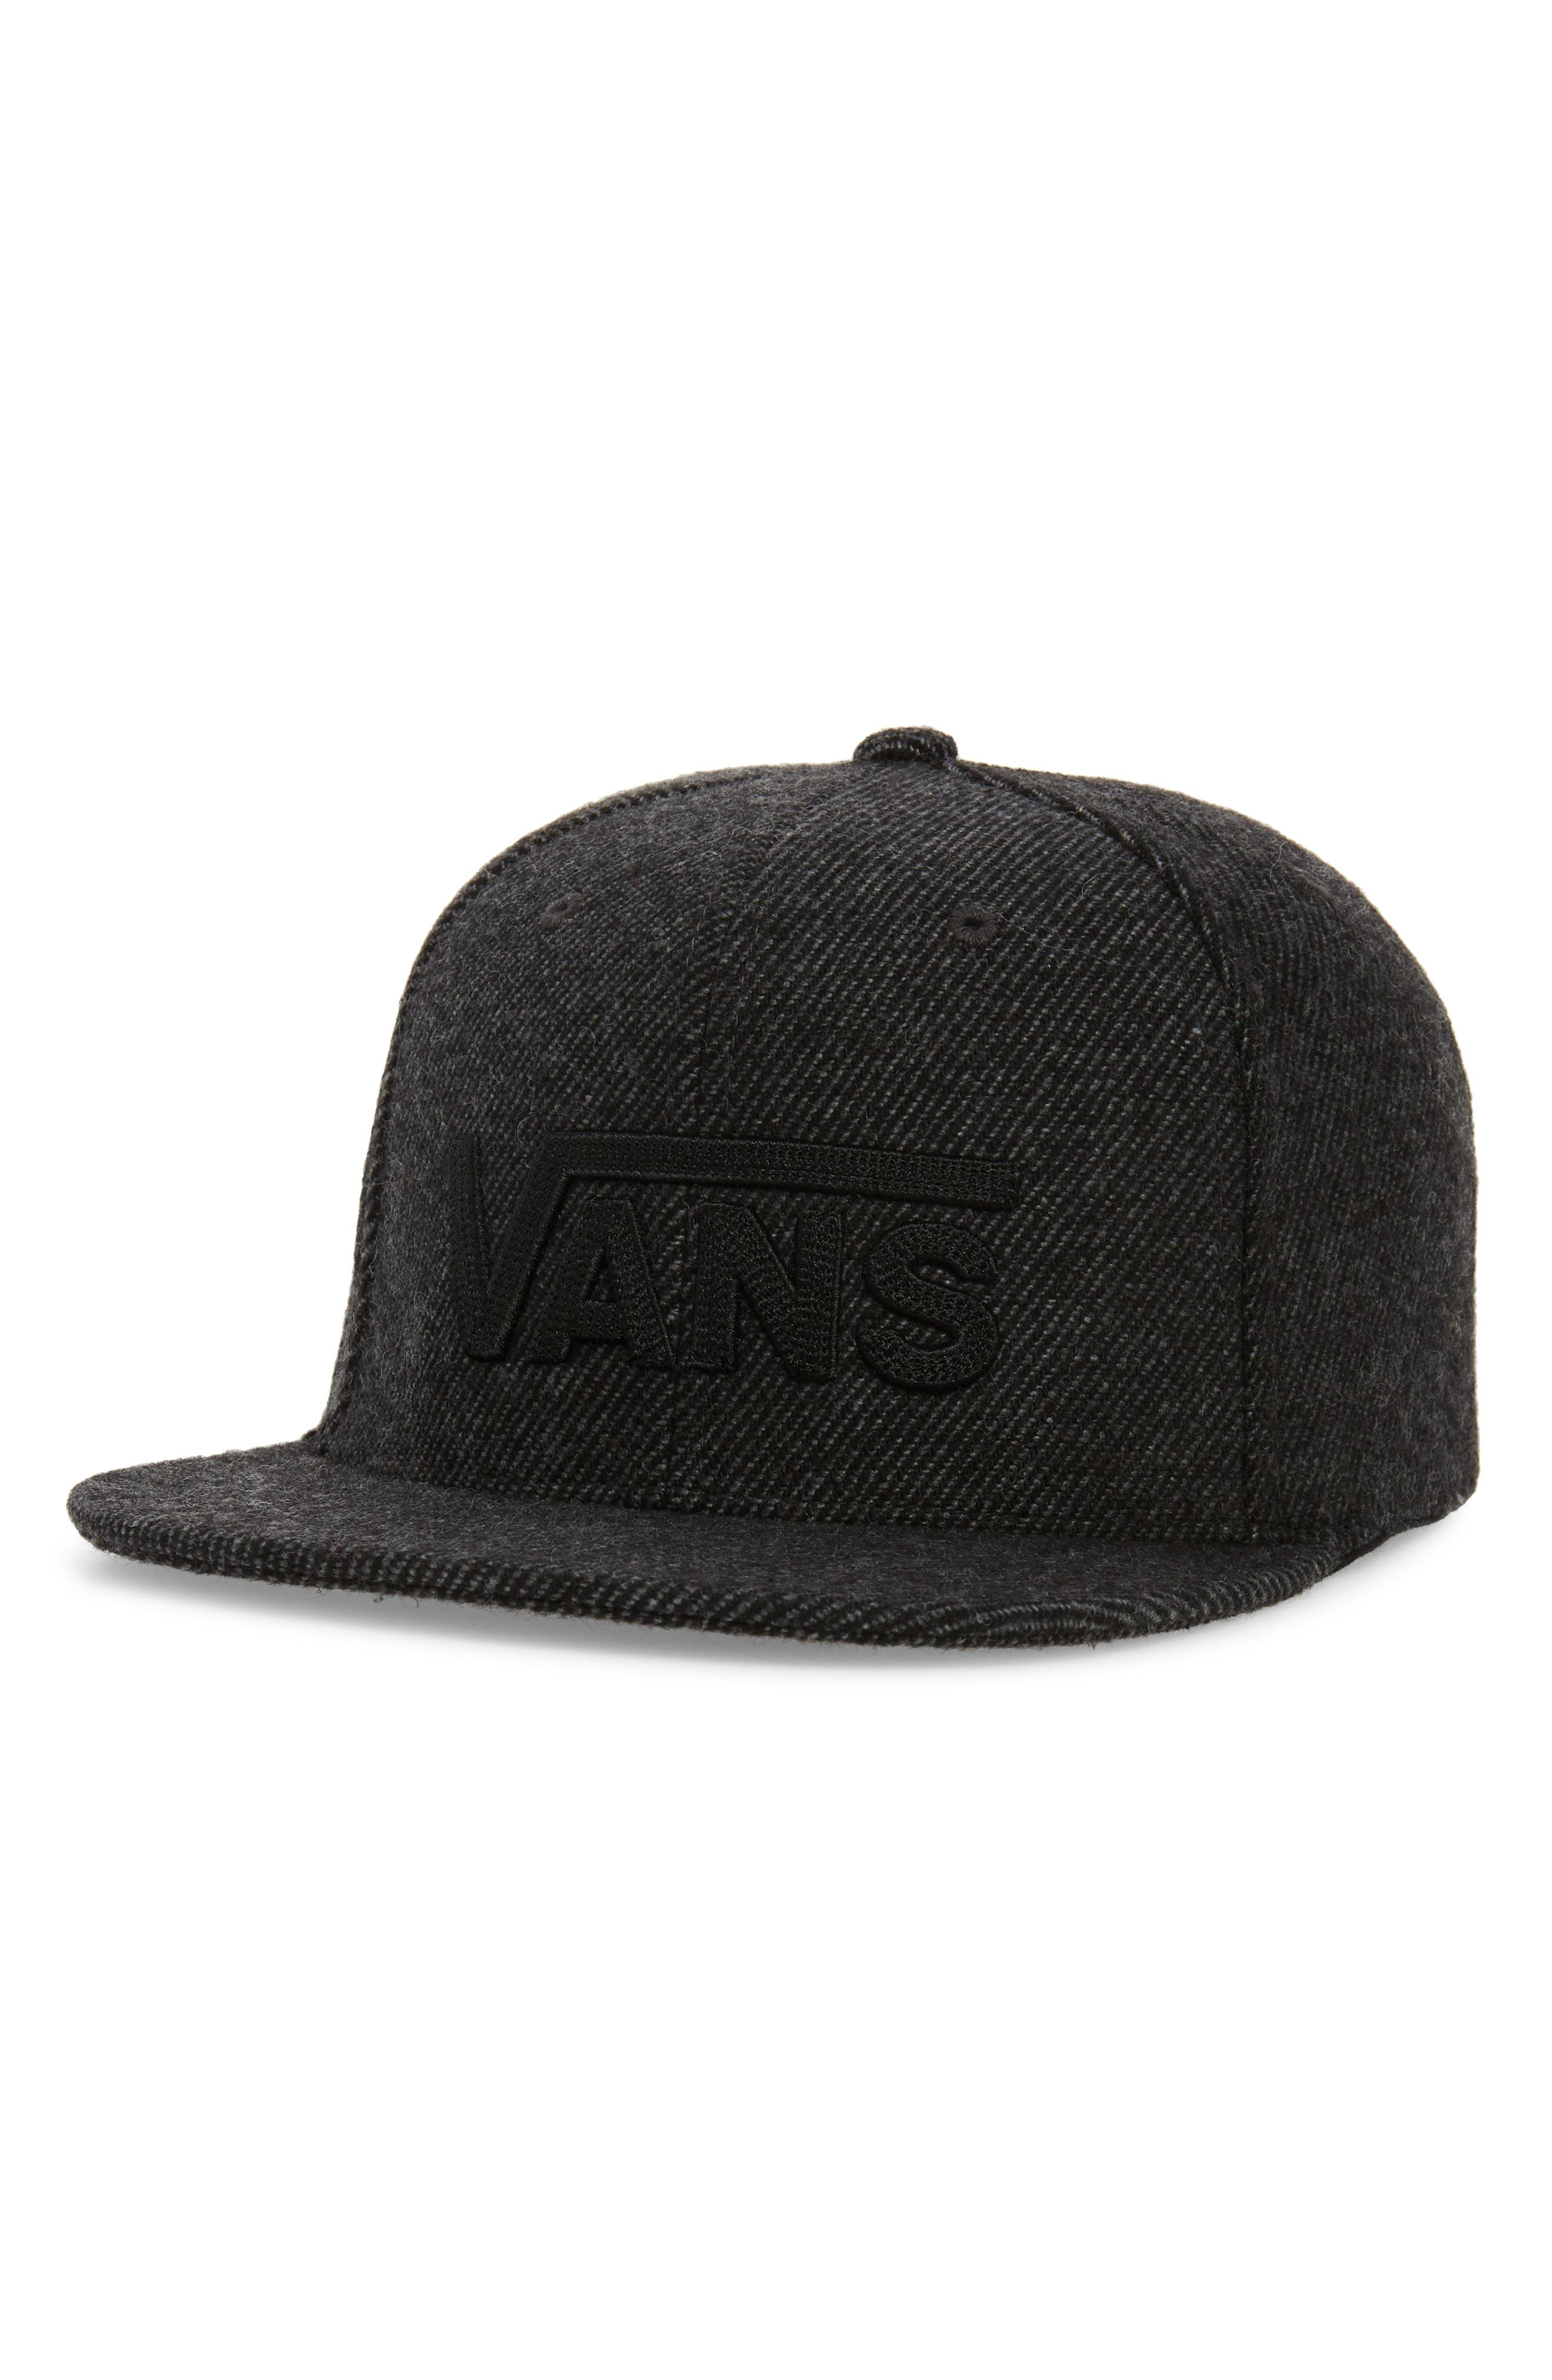 Lyst - Vans Drop V Ii Wool Blend Cap in Black for Men 98768cb81e0